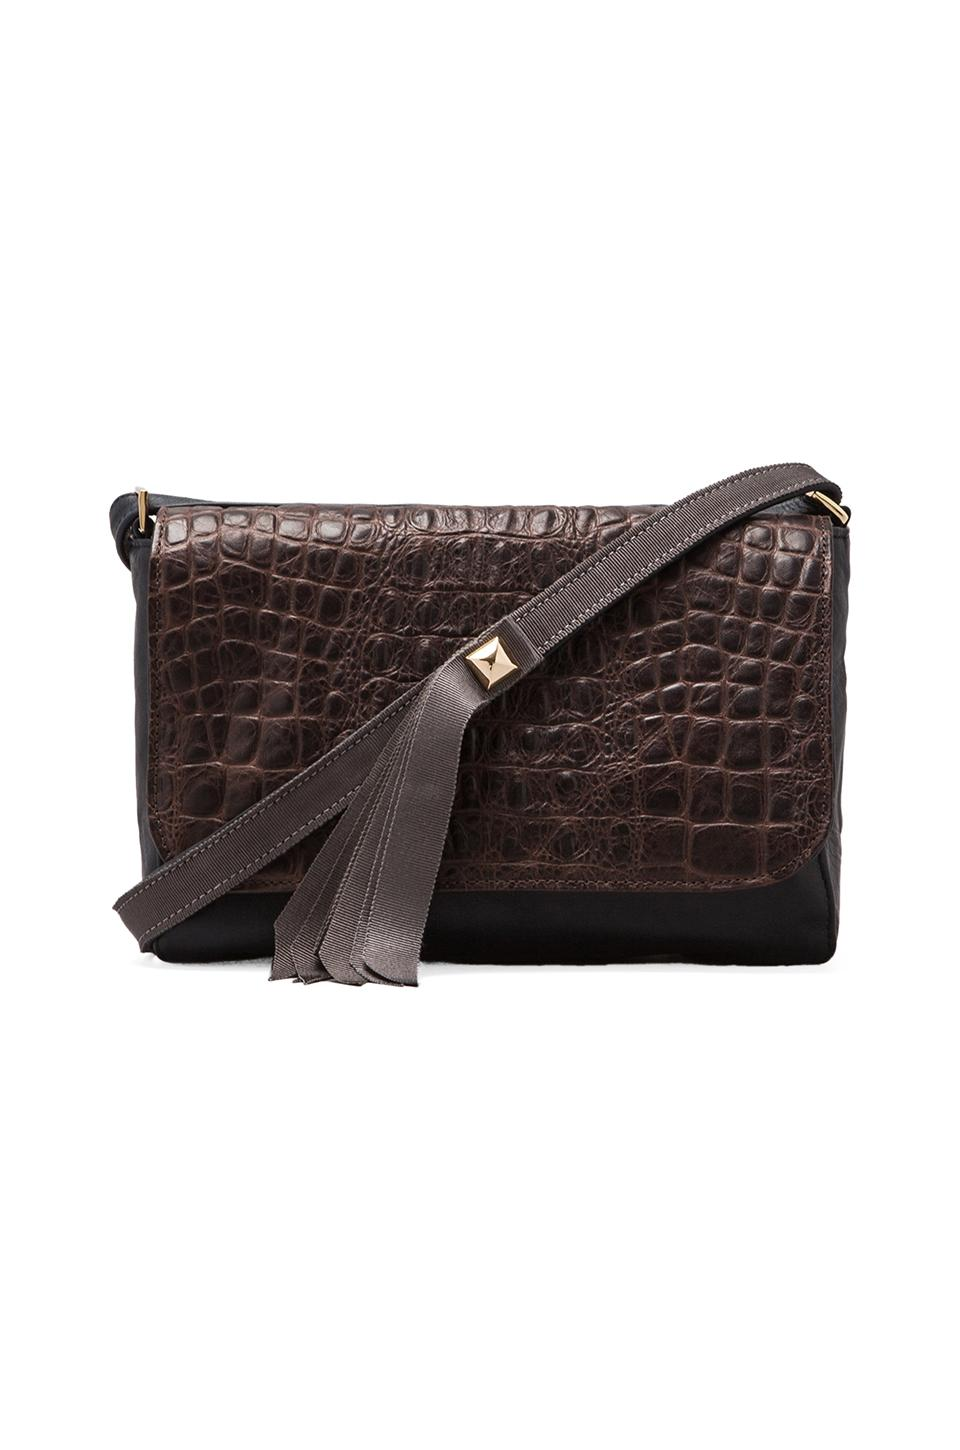 Clare V. Louise Shoulder Bag in Chocolate/Navy